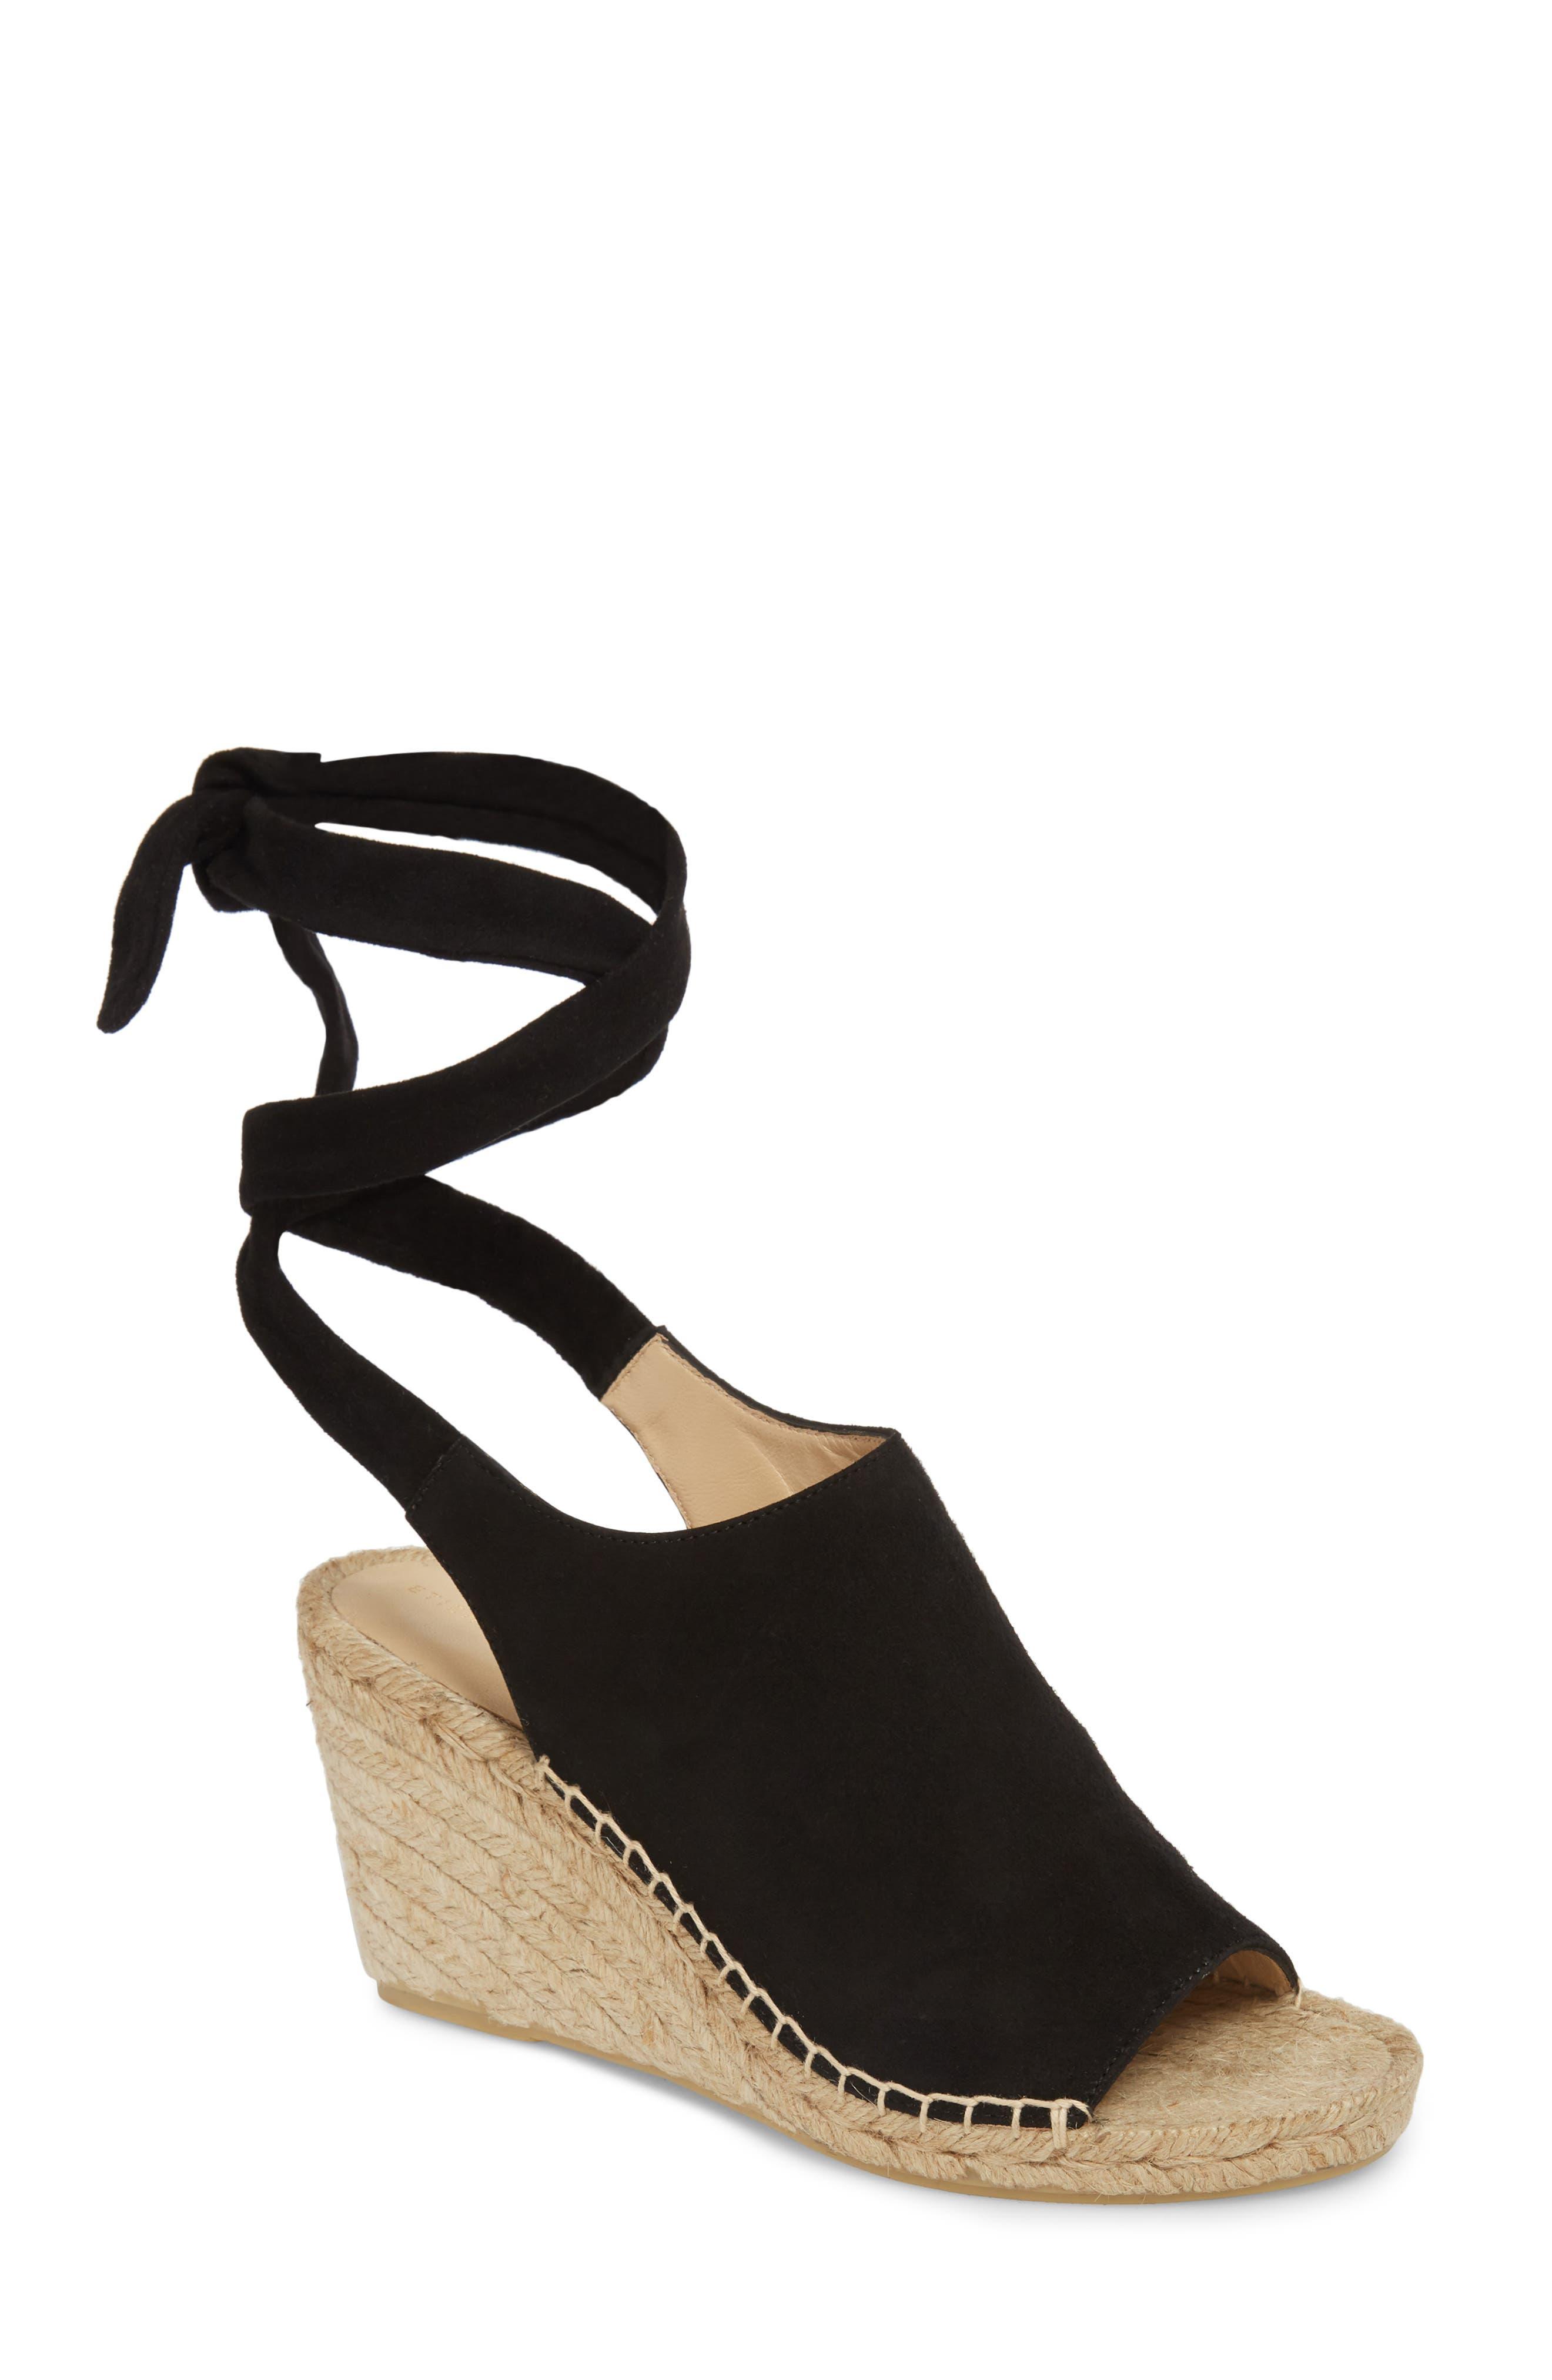 Vie Espadrille Wedge Sandal,                         Main,                         color, BLACK SUEDE